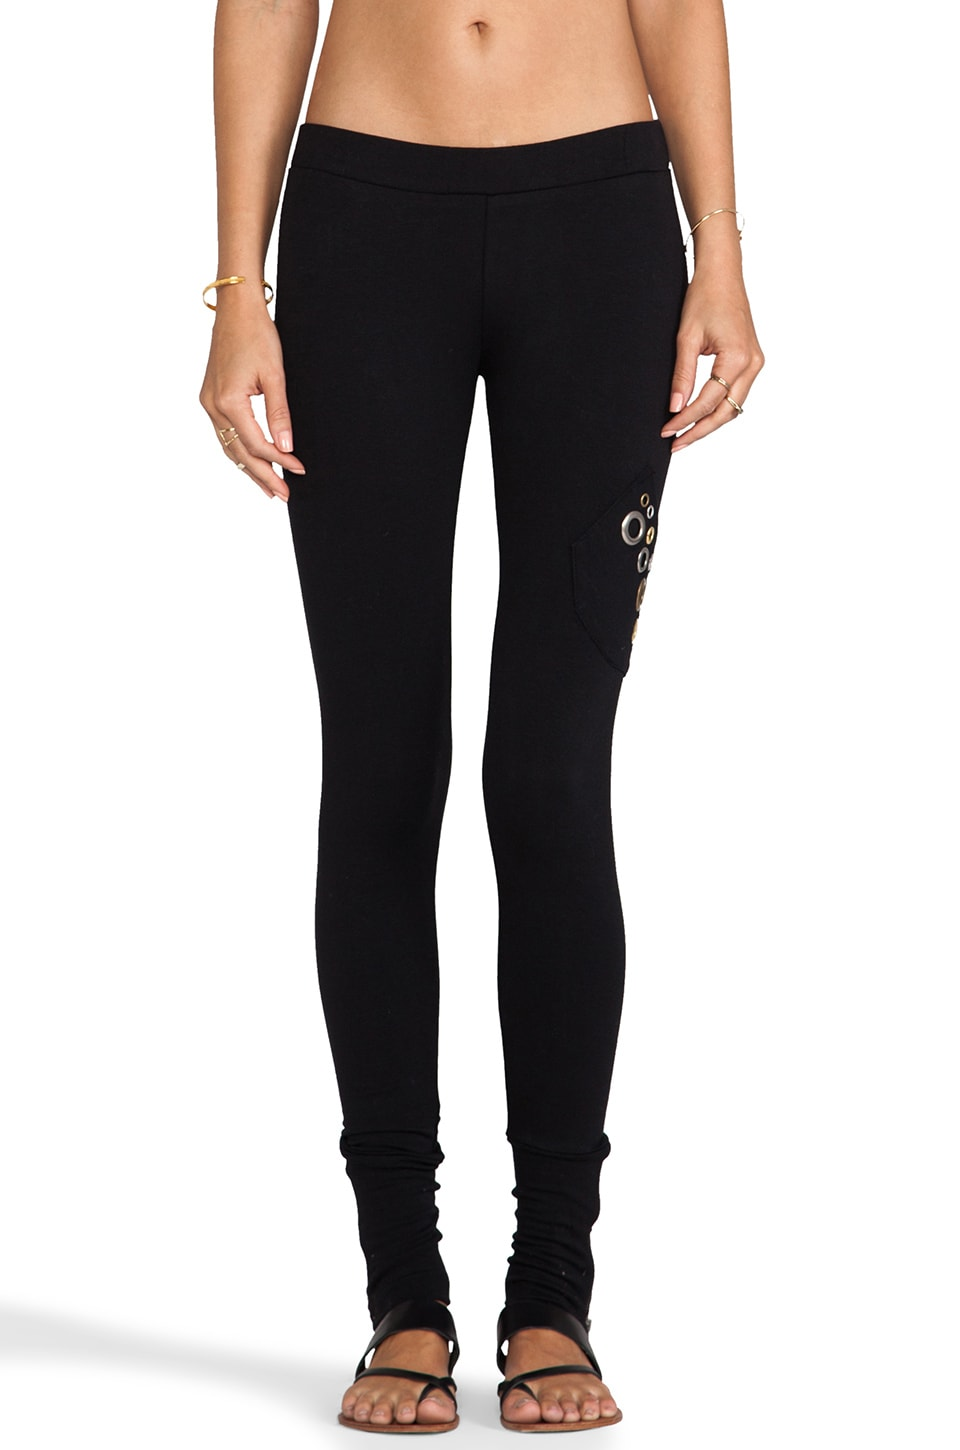 Love Haus by Beach Bunny Grommet Loungewear Zip Cuff Legging in Black